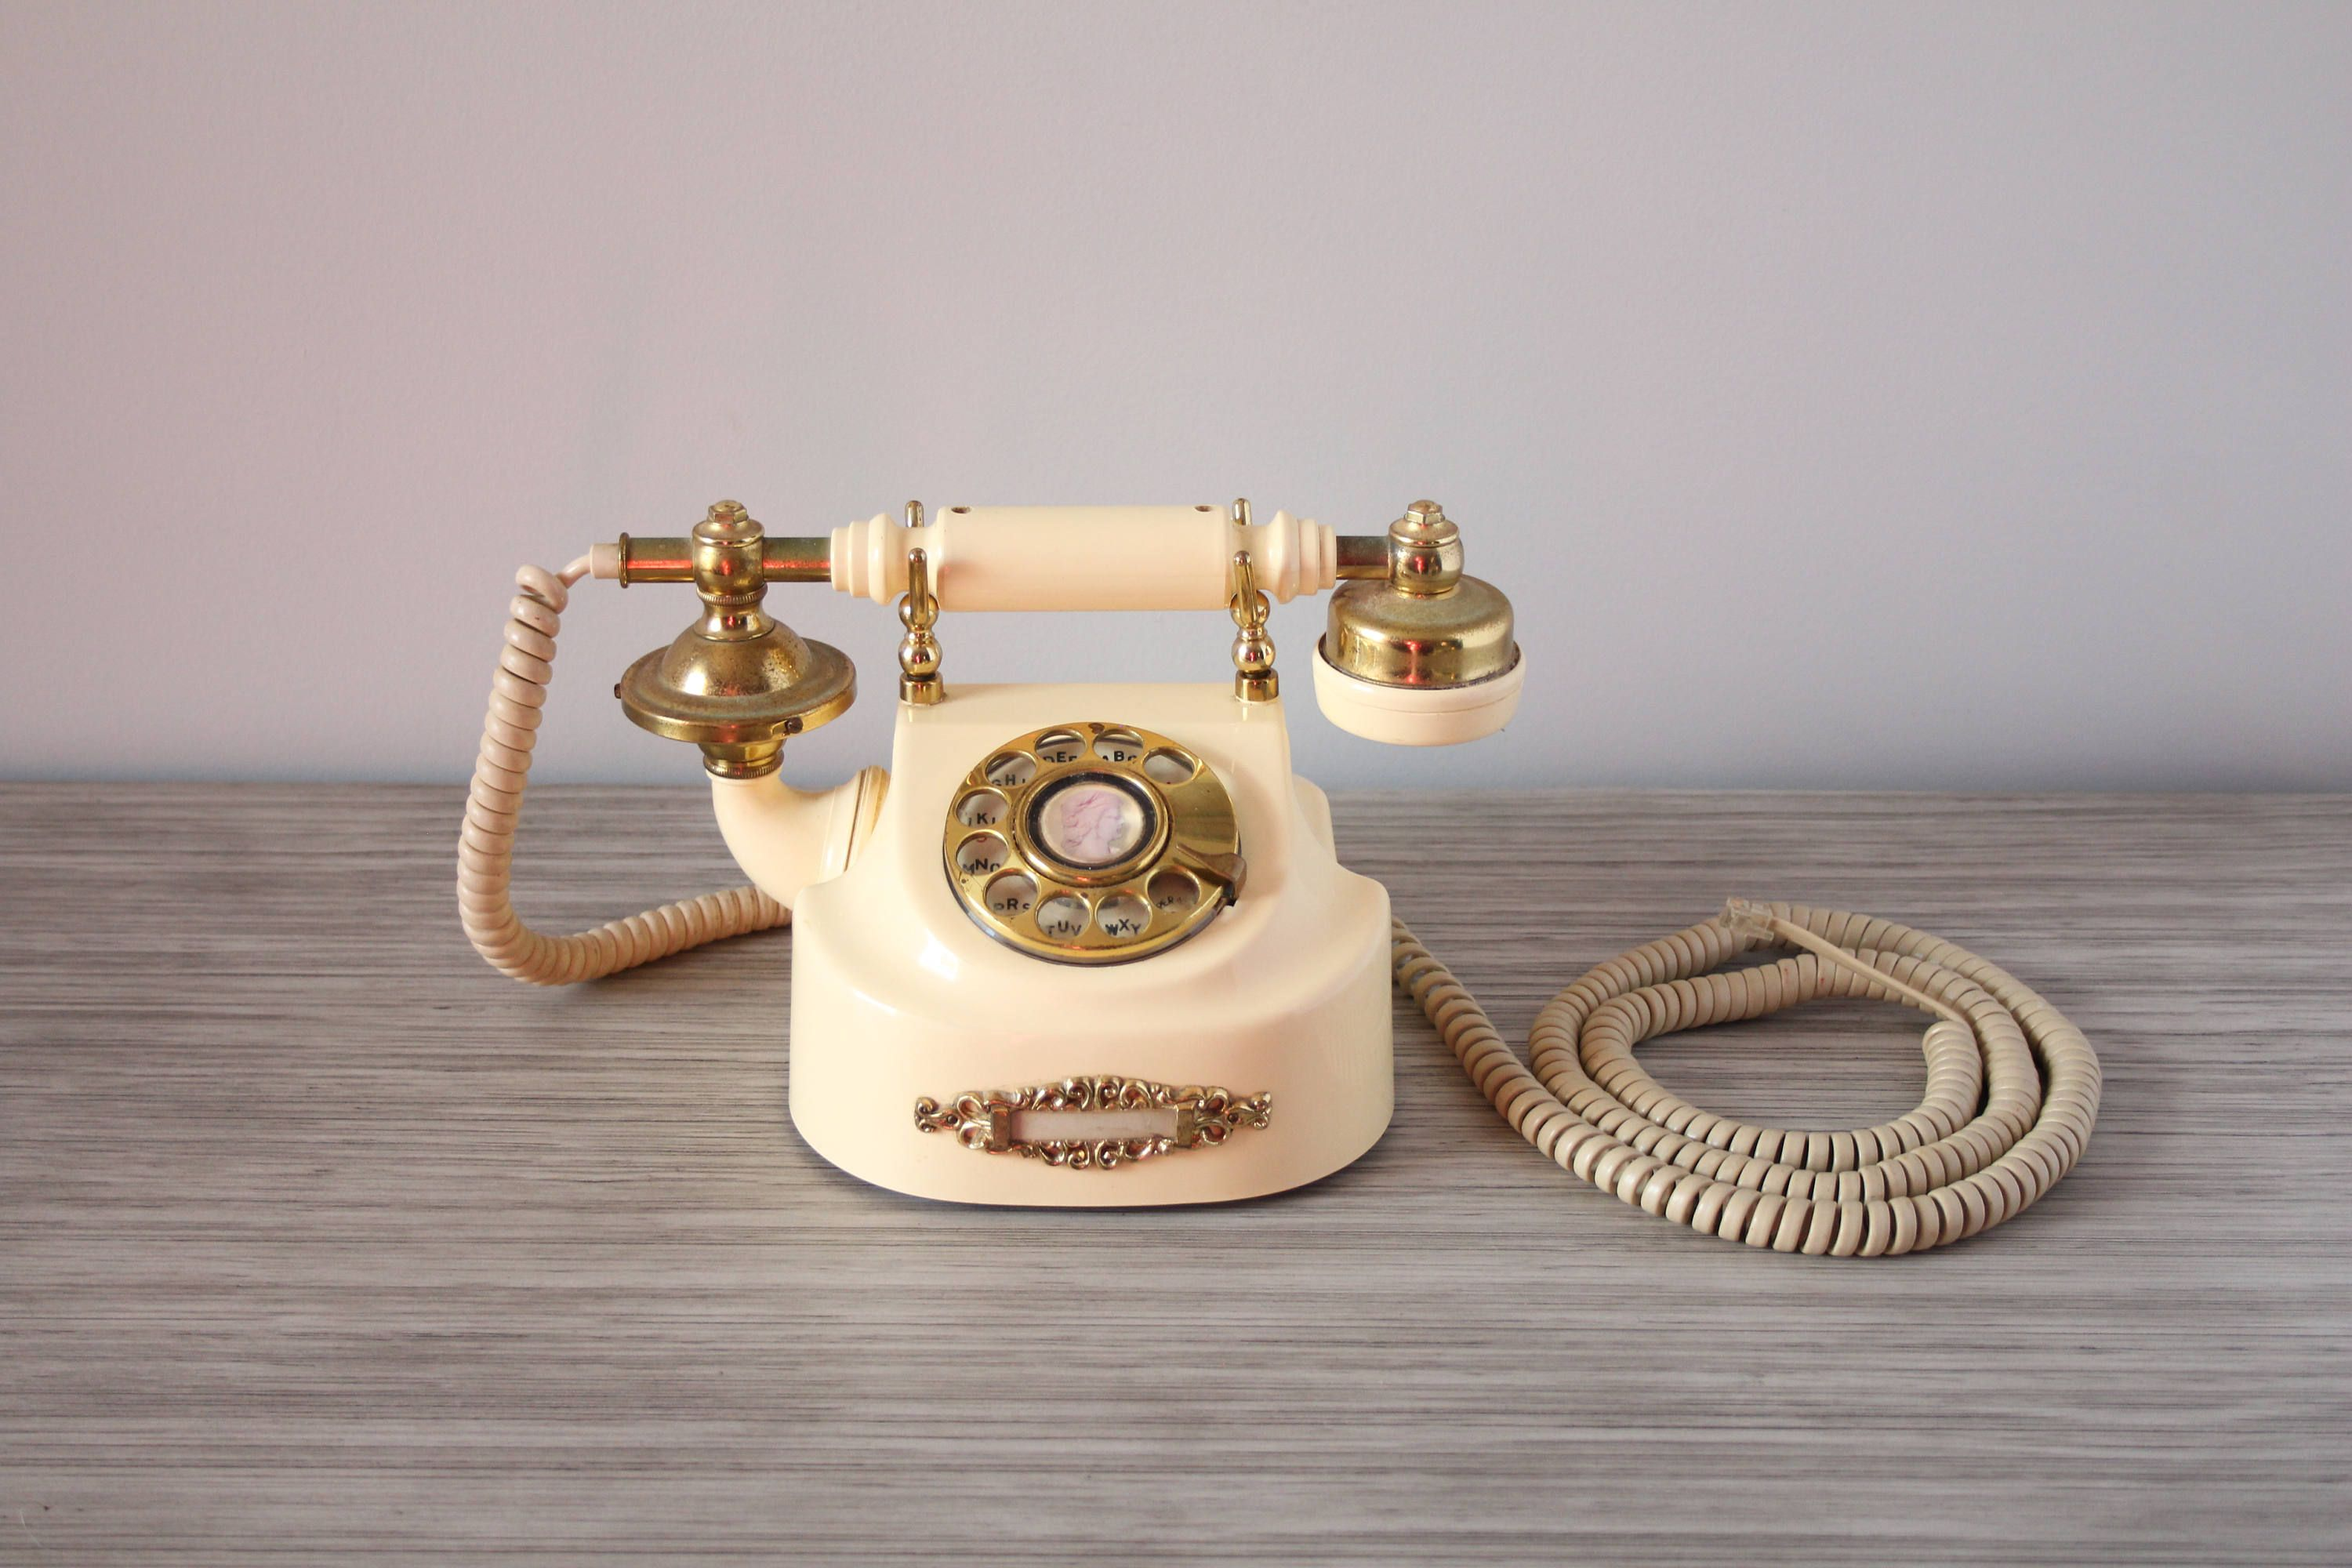 small resolution of vintage french style working rotary phone solid brass hardware ivory plastic body new york telephone company photography store display prop by